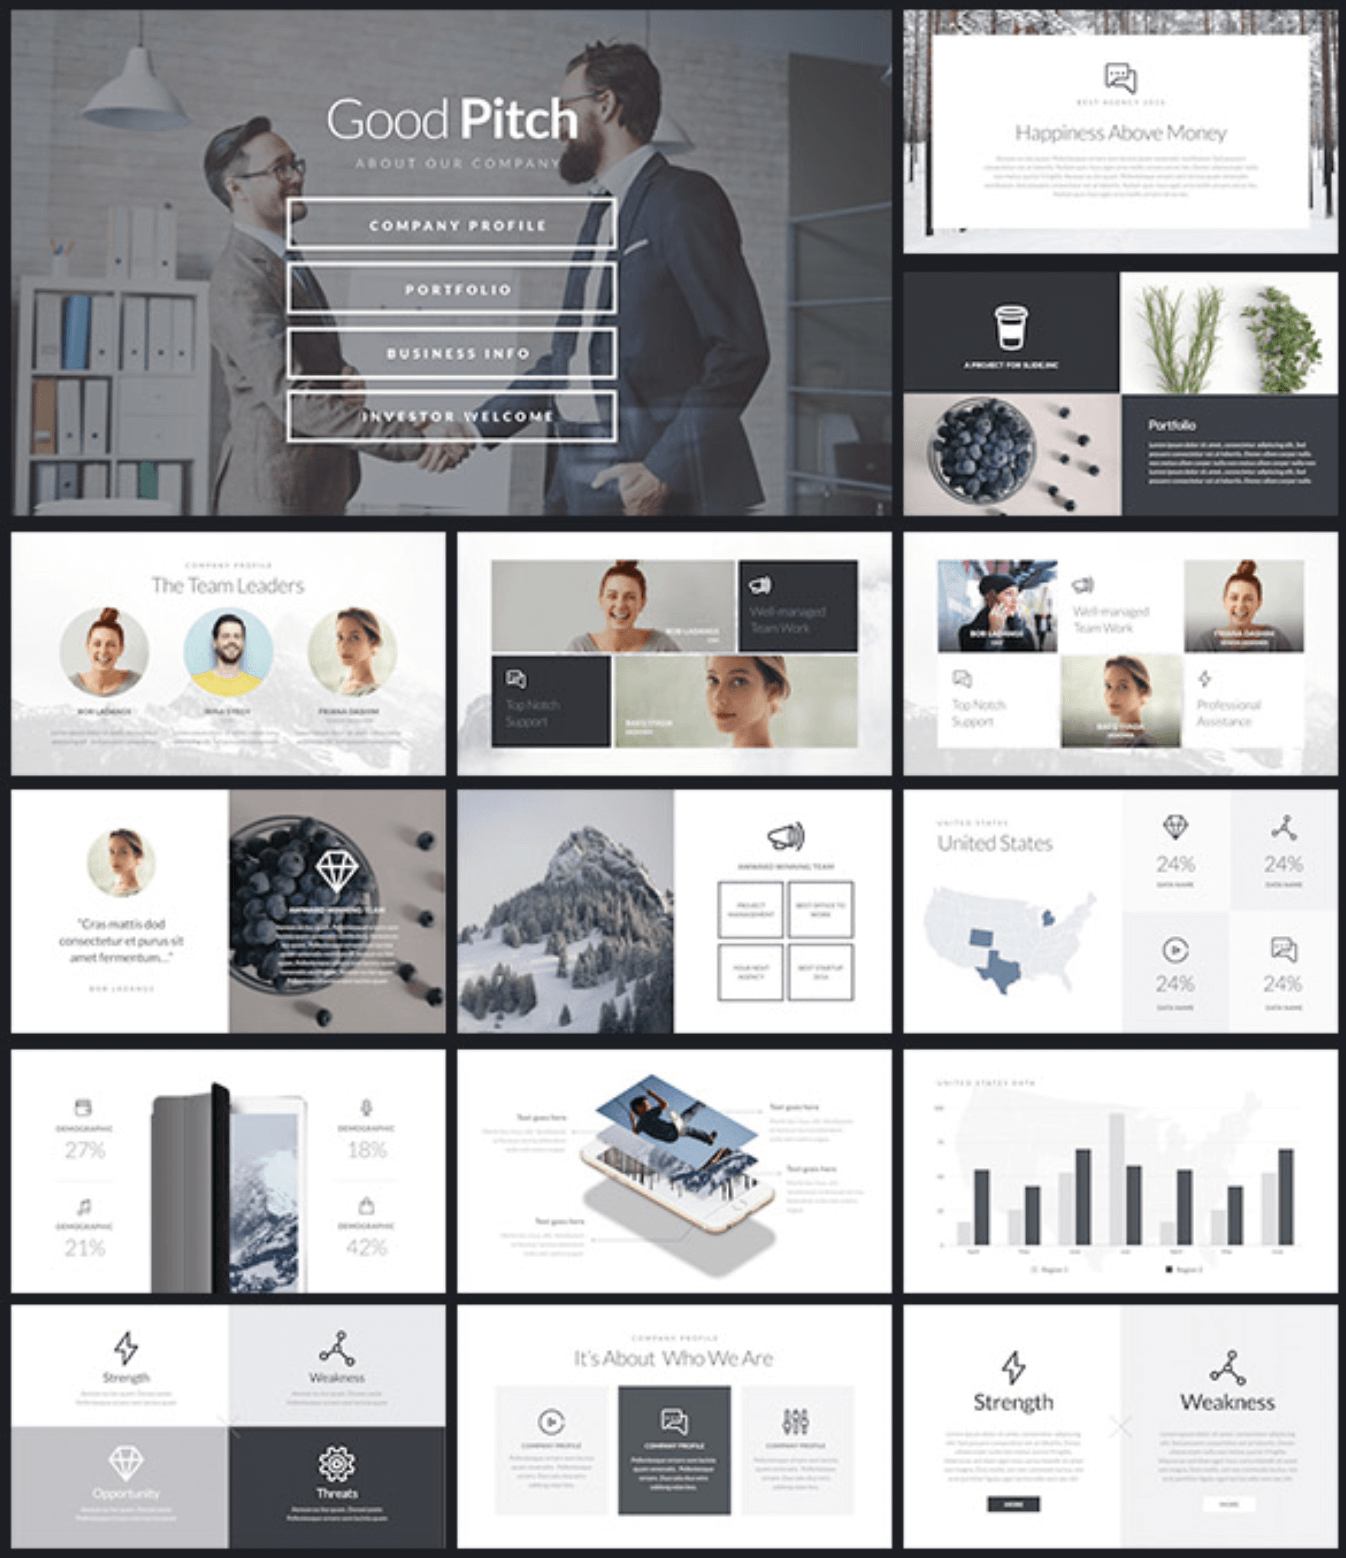 Free Business Powerpoint Templates 10 Impressive Designs: An AWESOME, Editable Professional PowerPoint Template [Free]